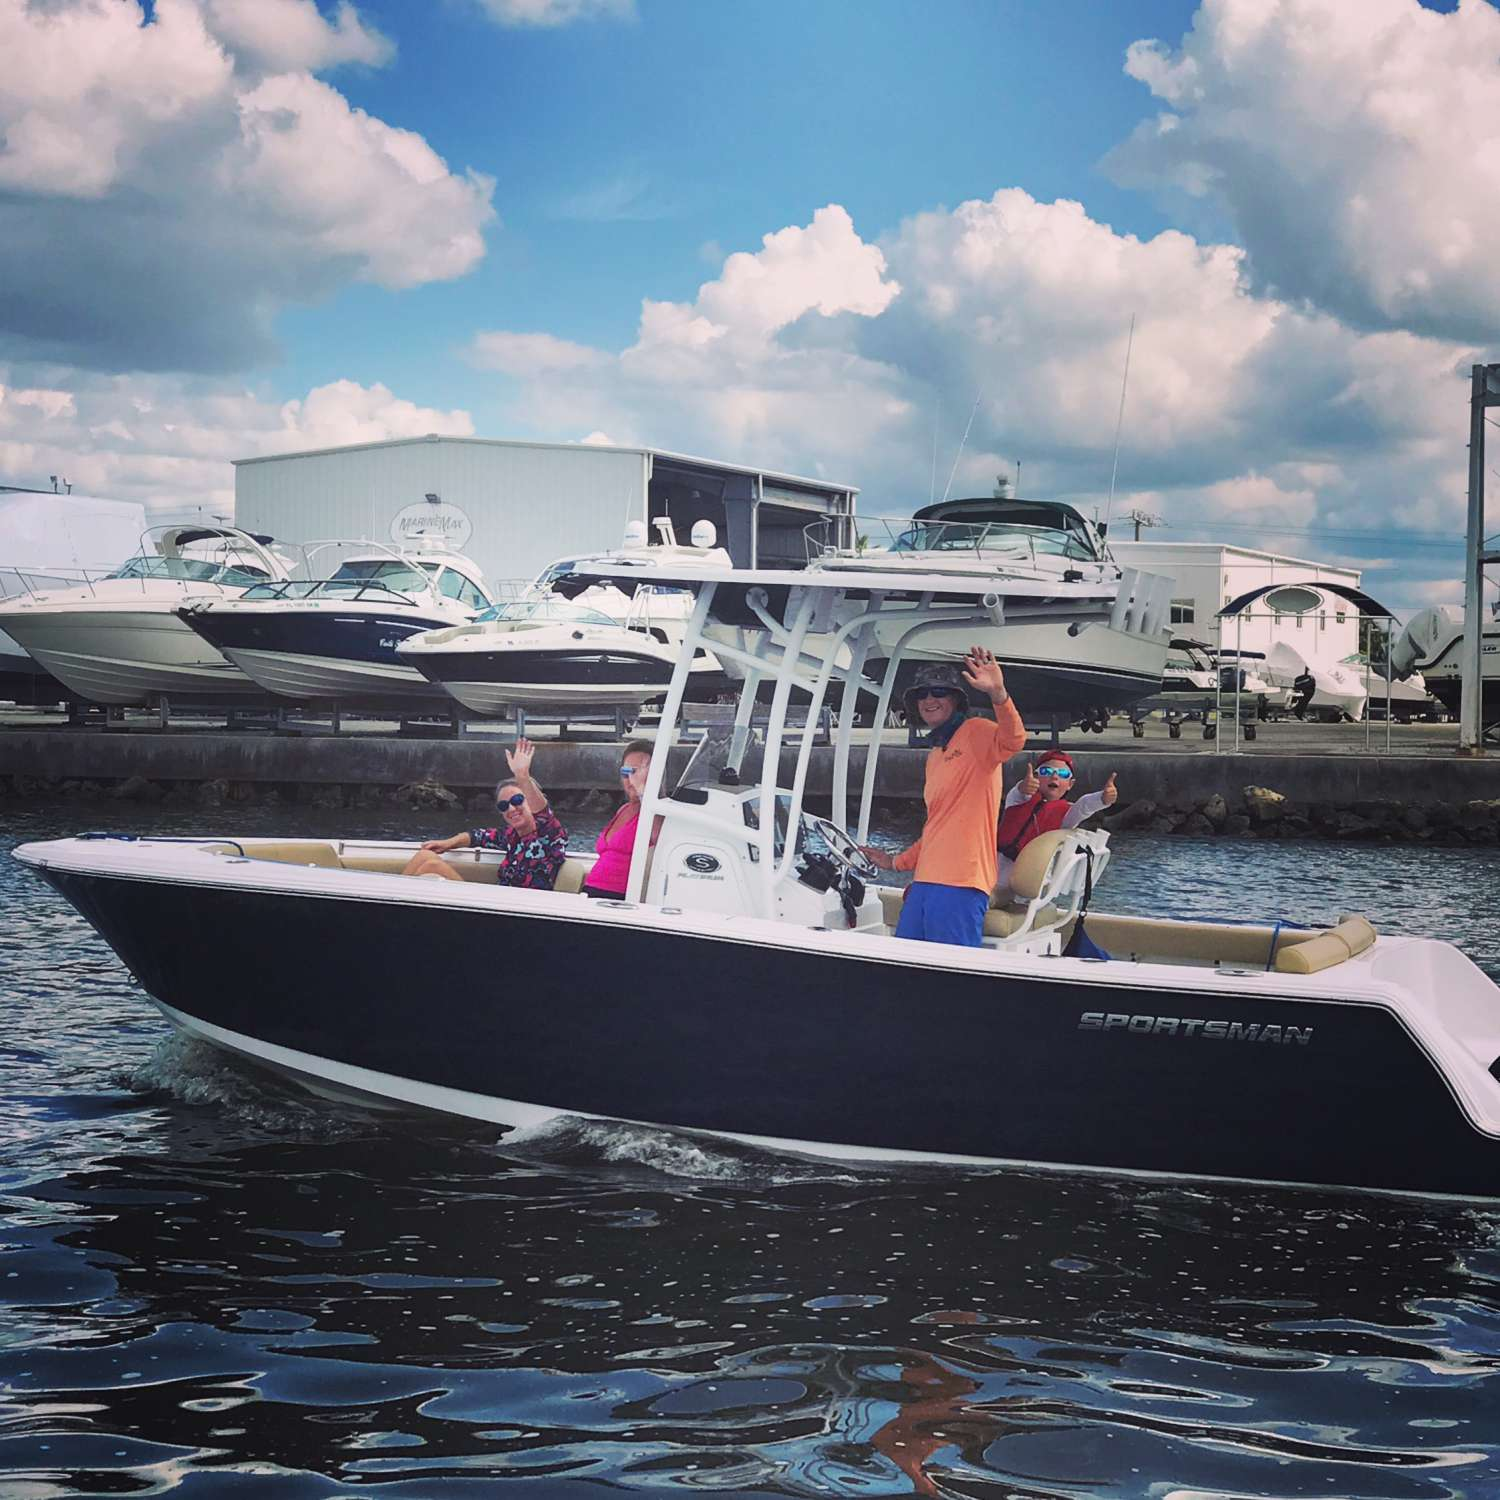 Title: Family Fun - On board their Sportsman Heritage 231 Center Console - Location: Parrish, Florida. Participating in the Photo Contest #SportsmanSeptember2017